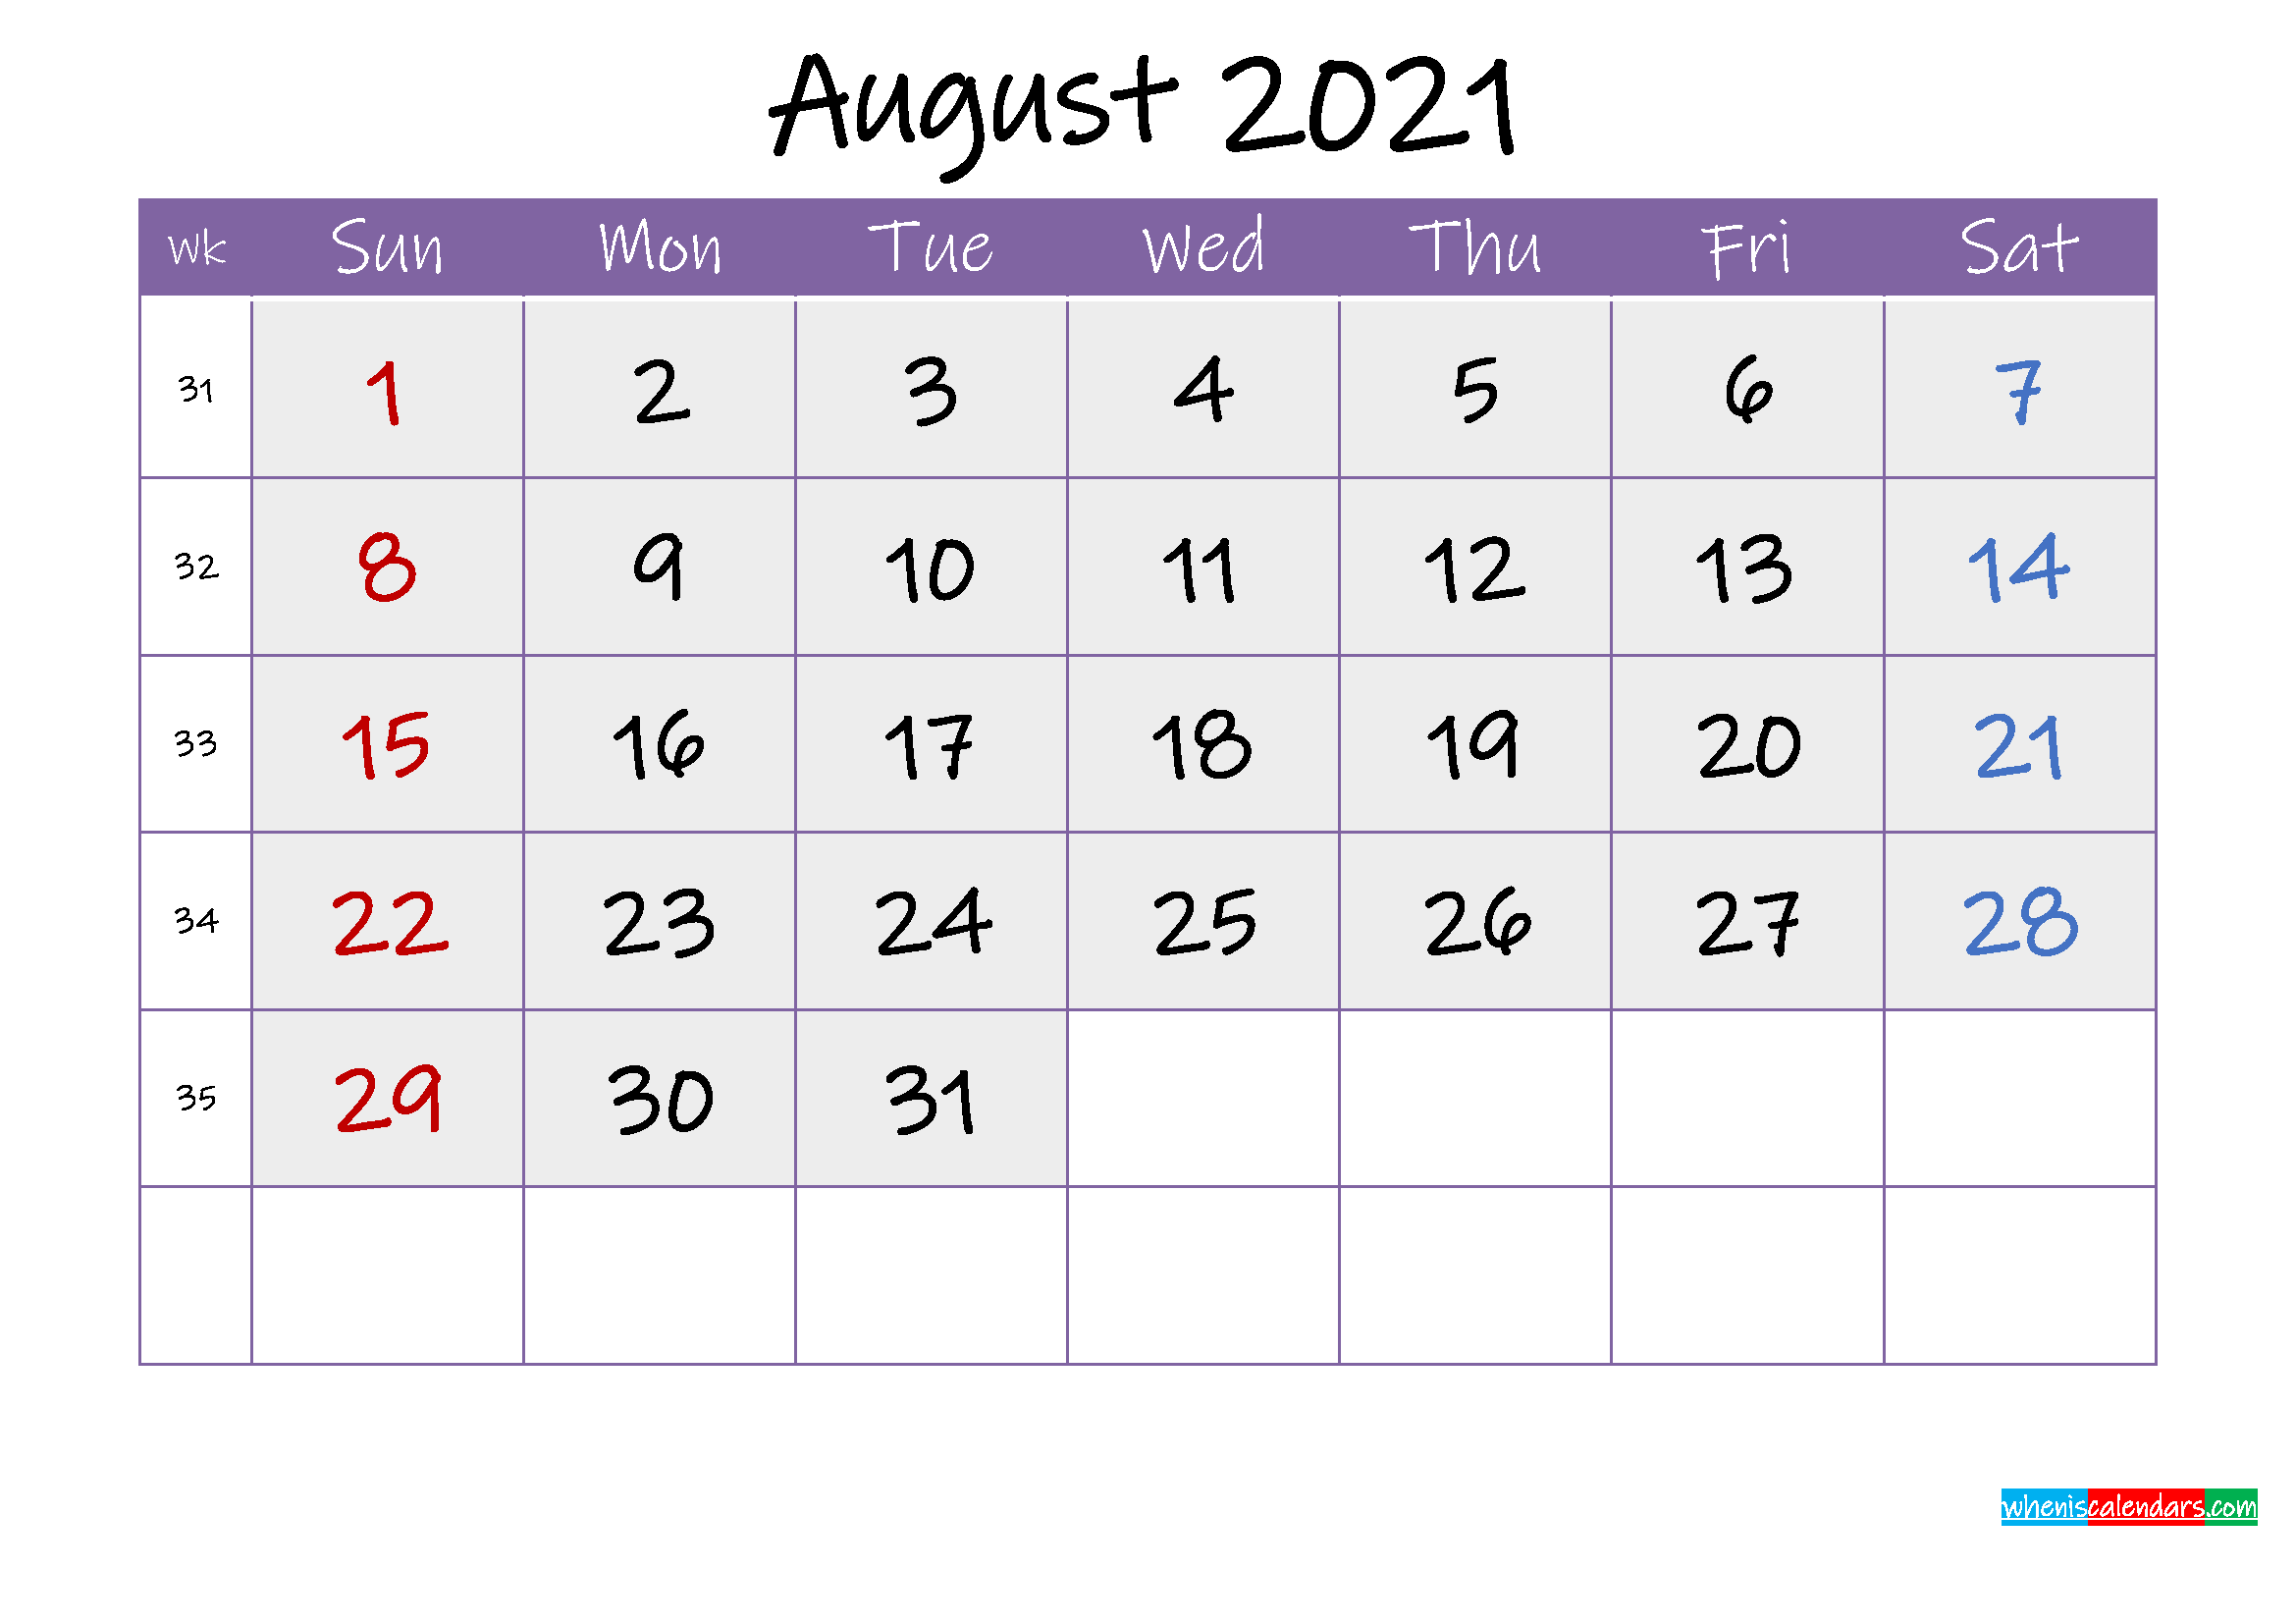 Free August 2021 Printable Calendar with Holidays